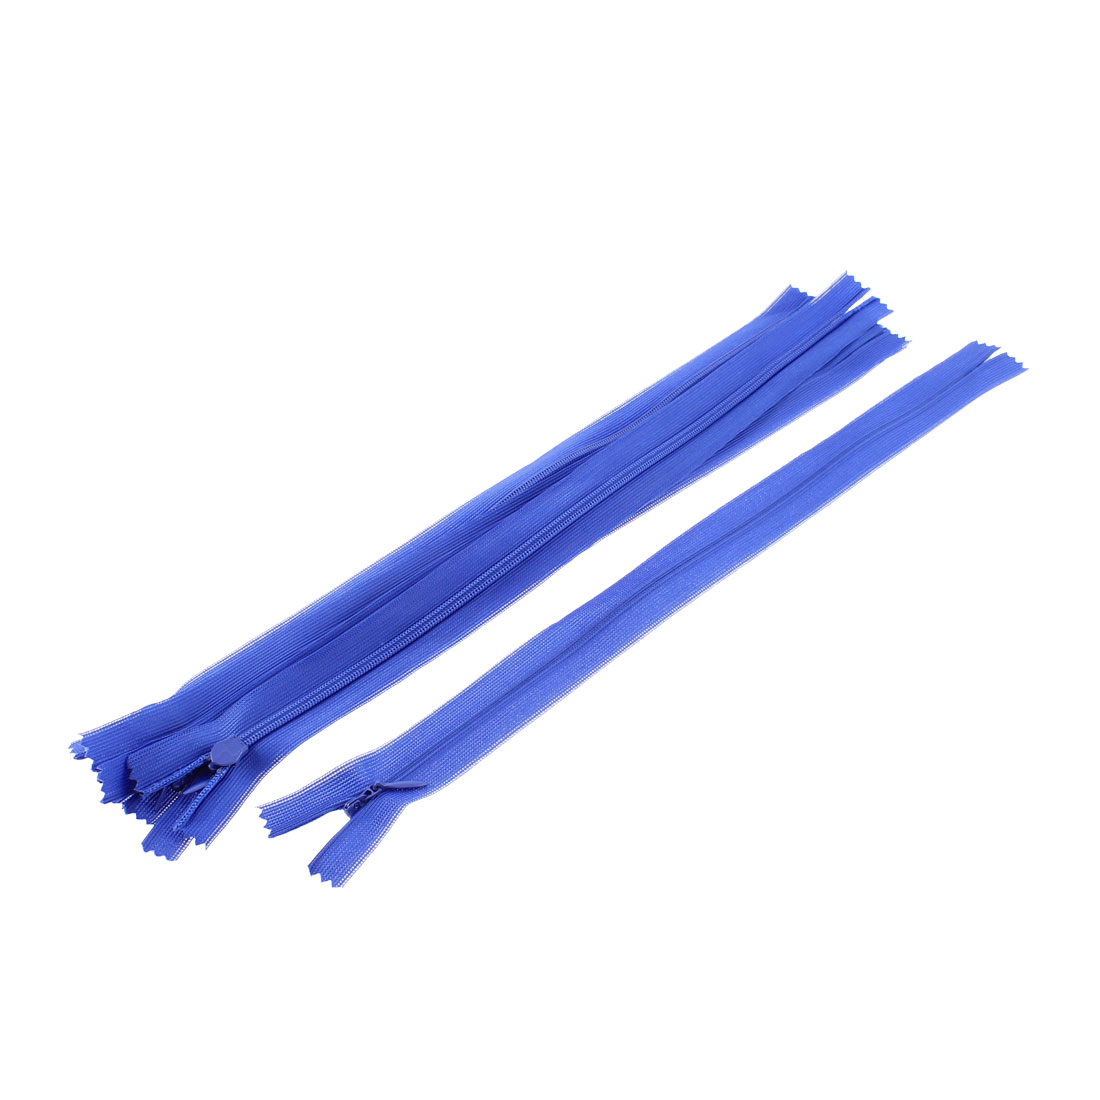 5 Pcs Blue 12-inch Nylon Zippers Zips for Doll Clothes